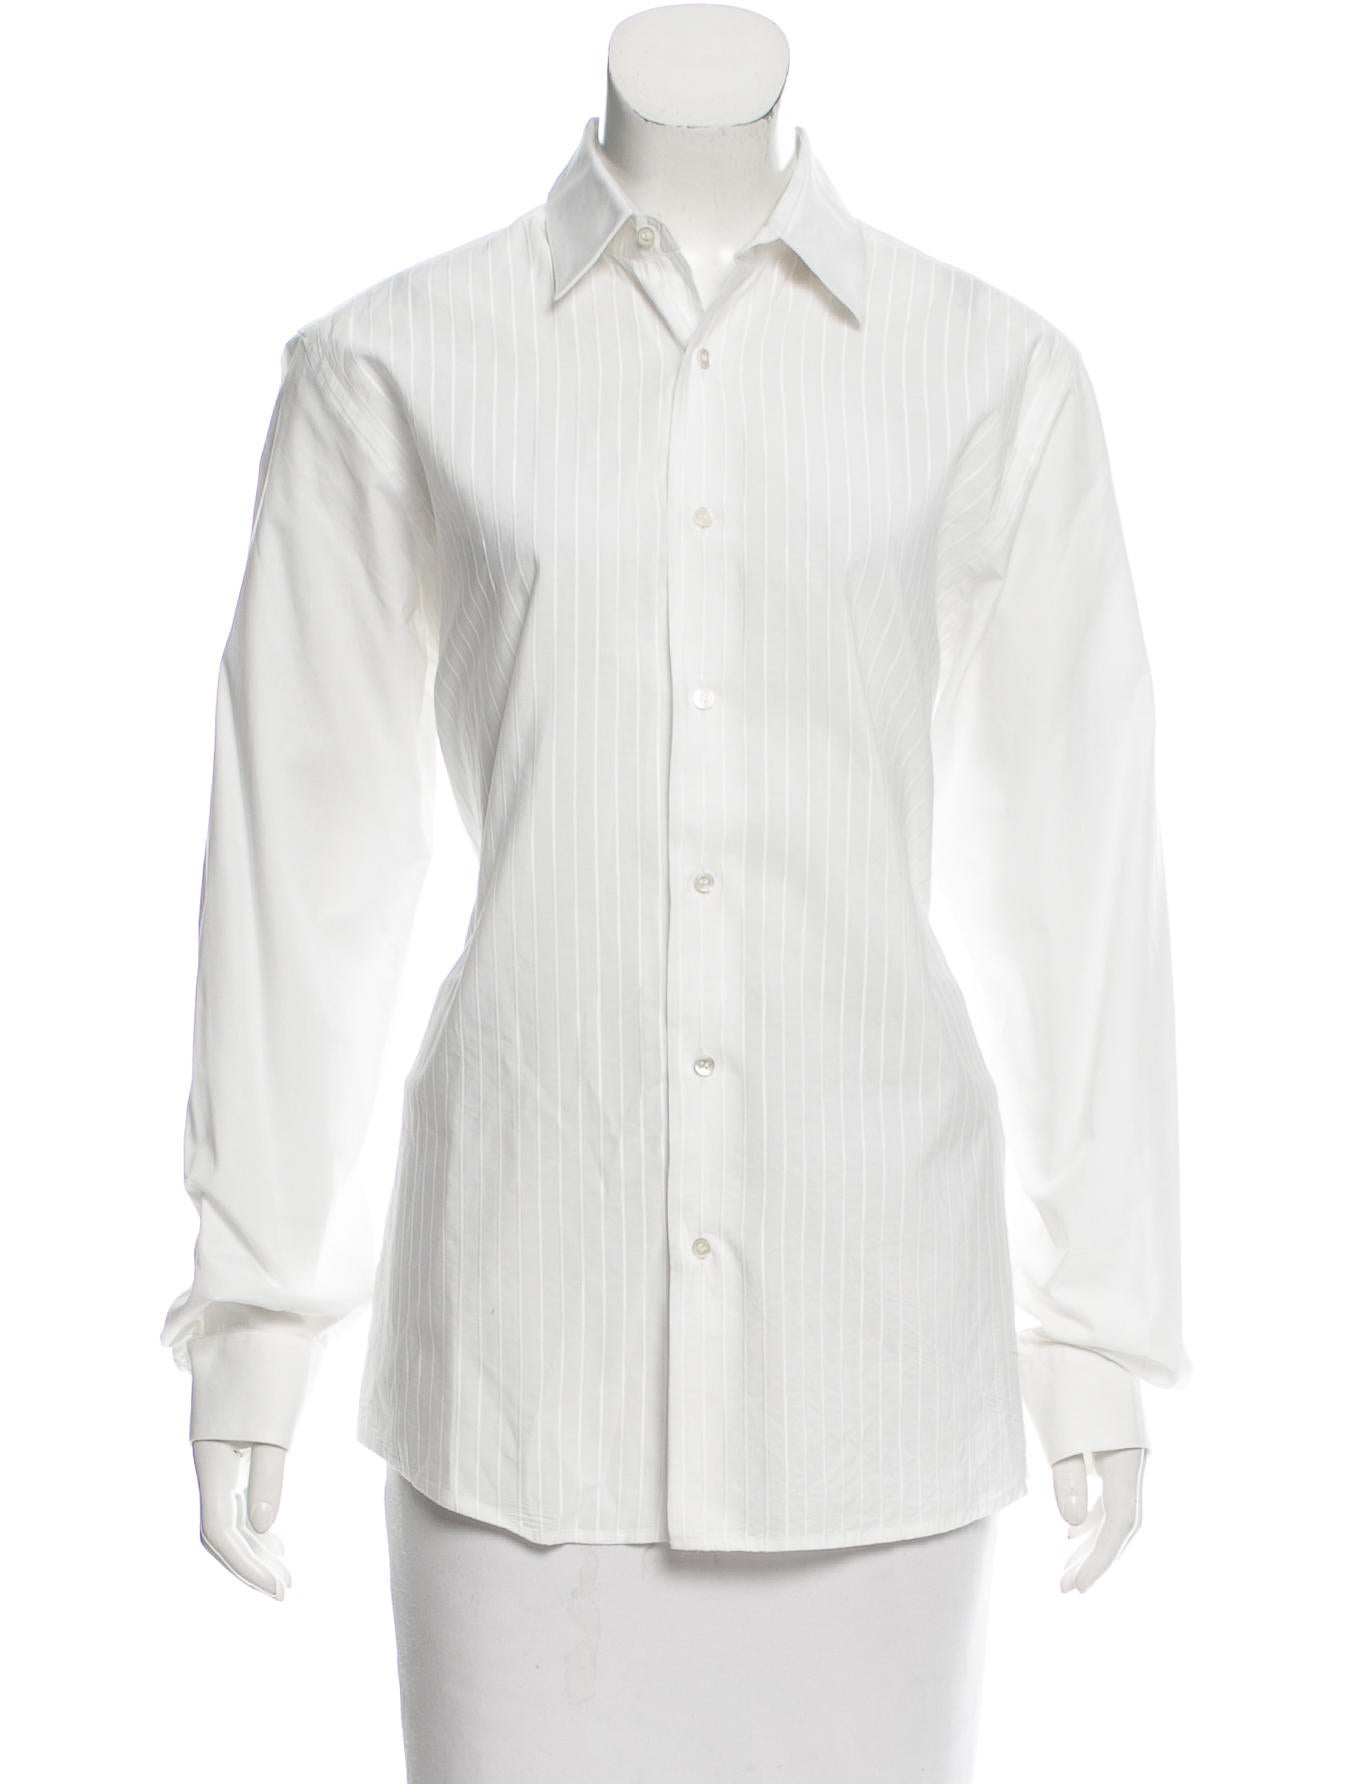 Christian dior poplin button up top clothing chr58980 for Christian dior button up shirt